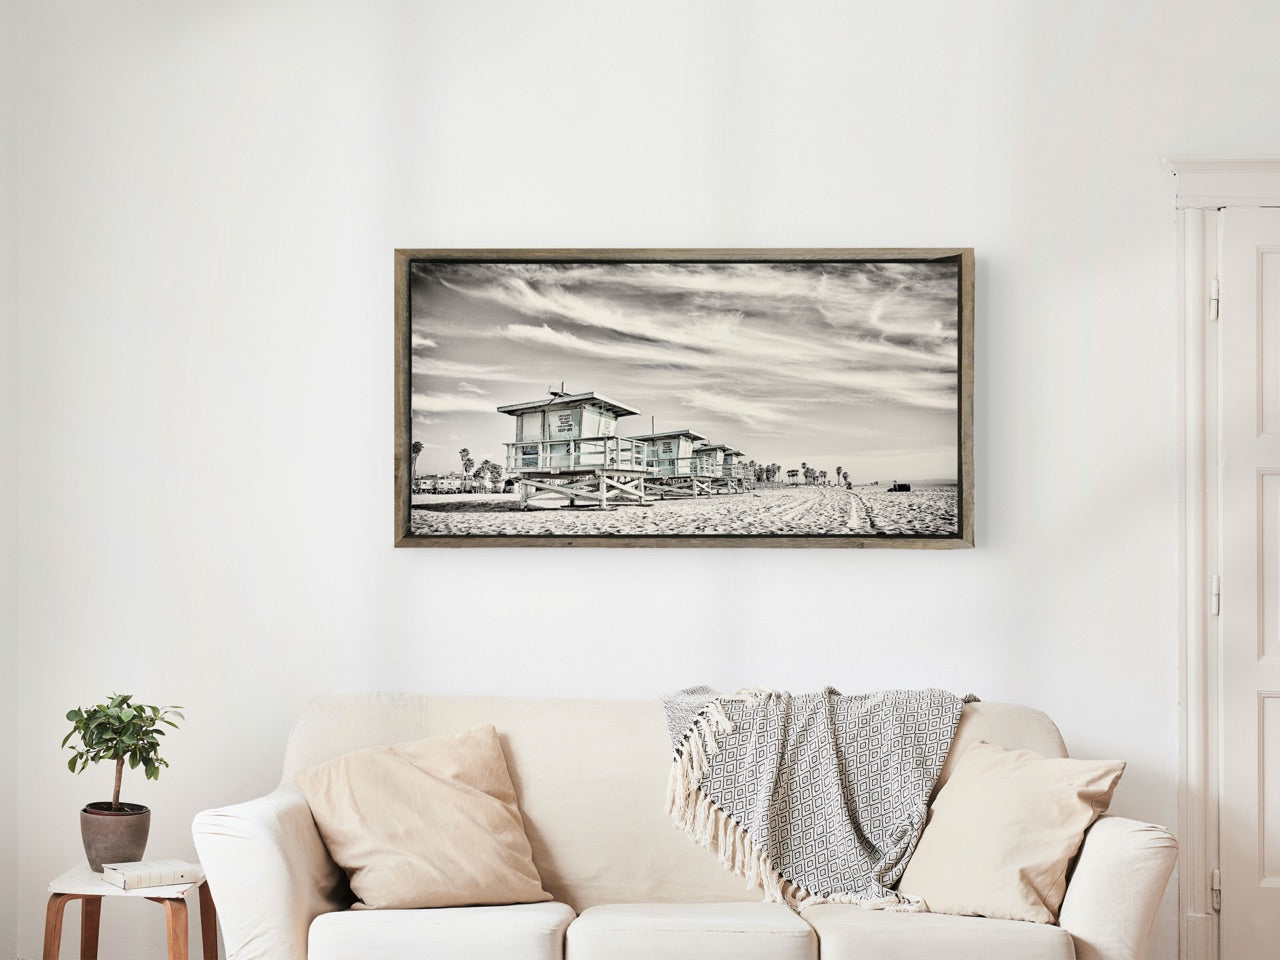 Framed beach photograph in living room